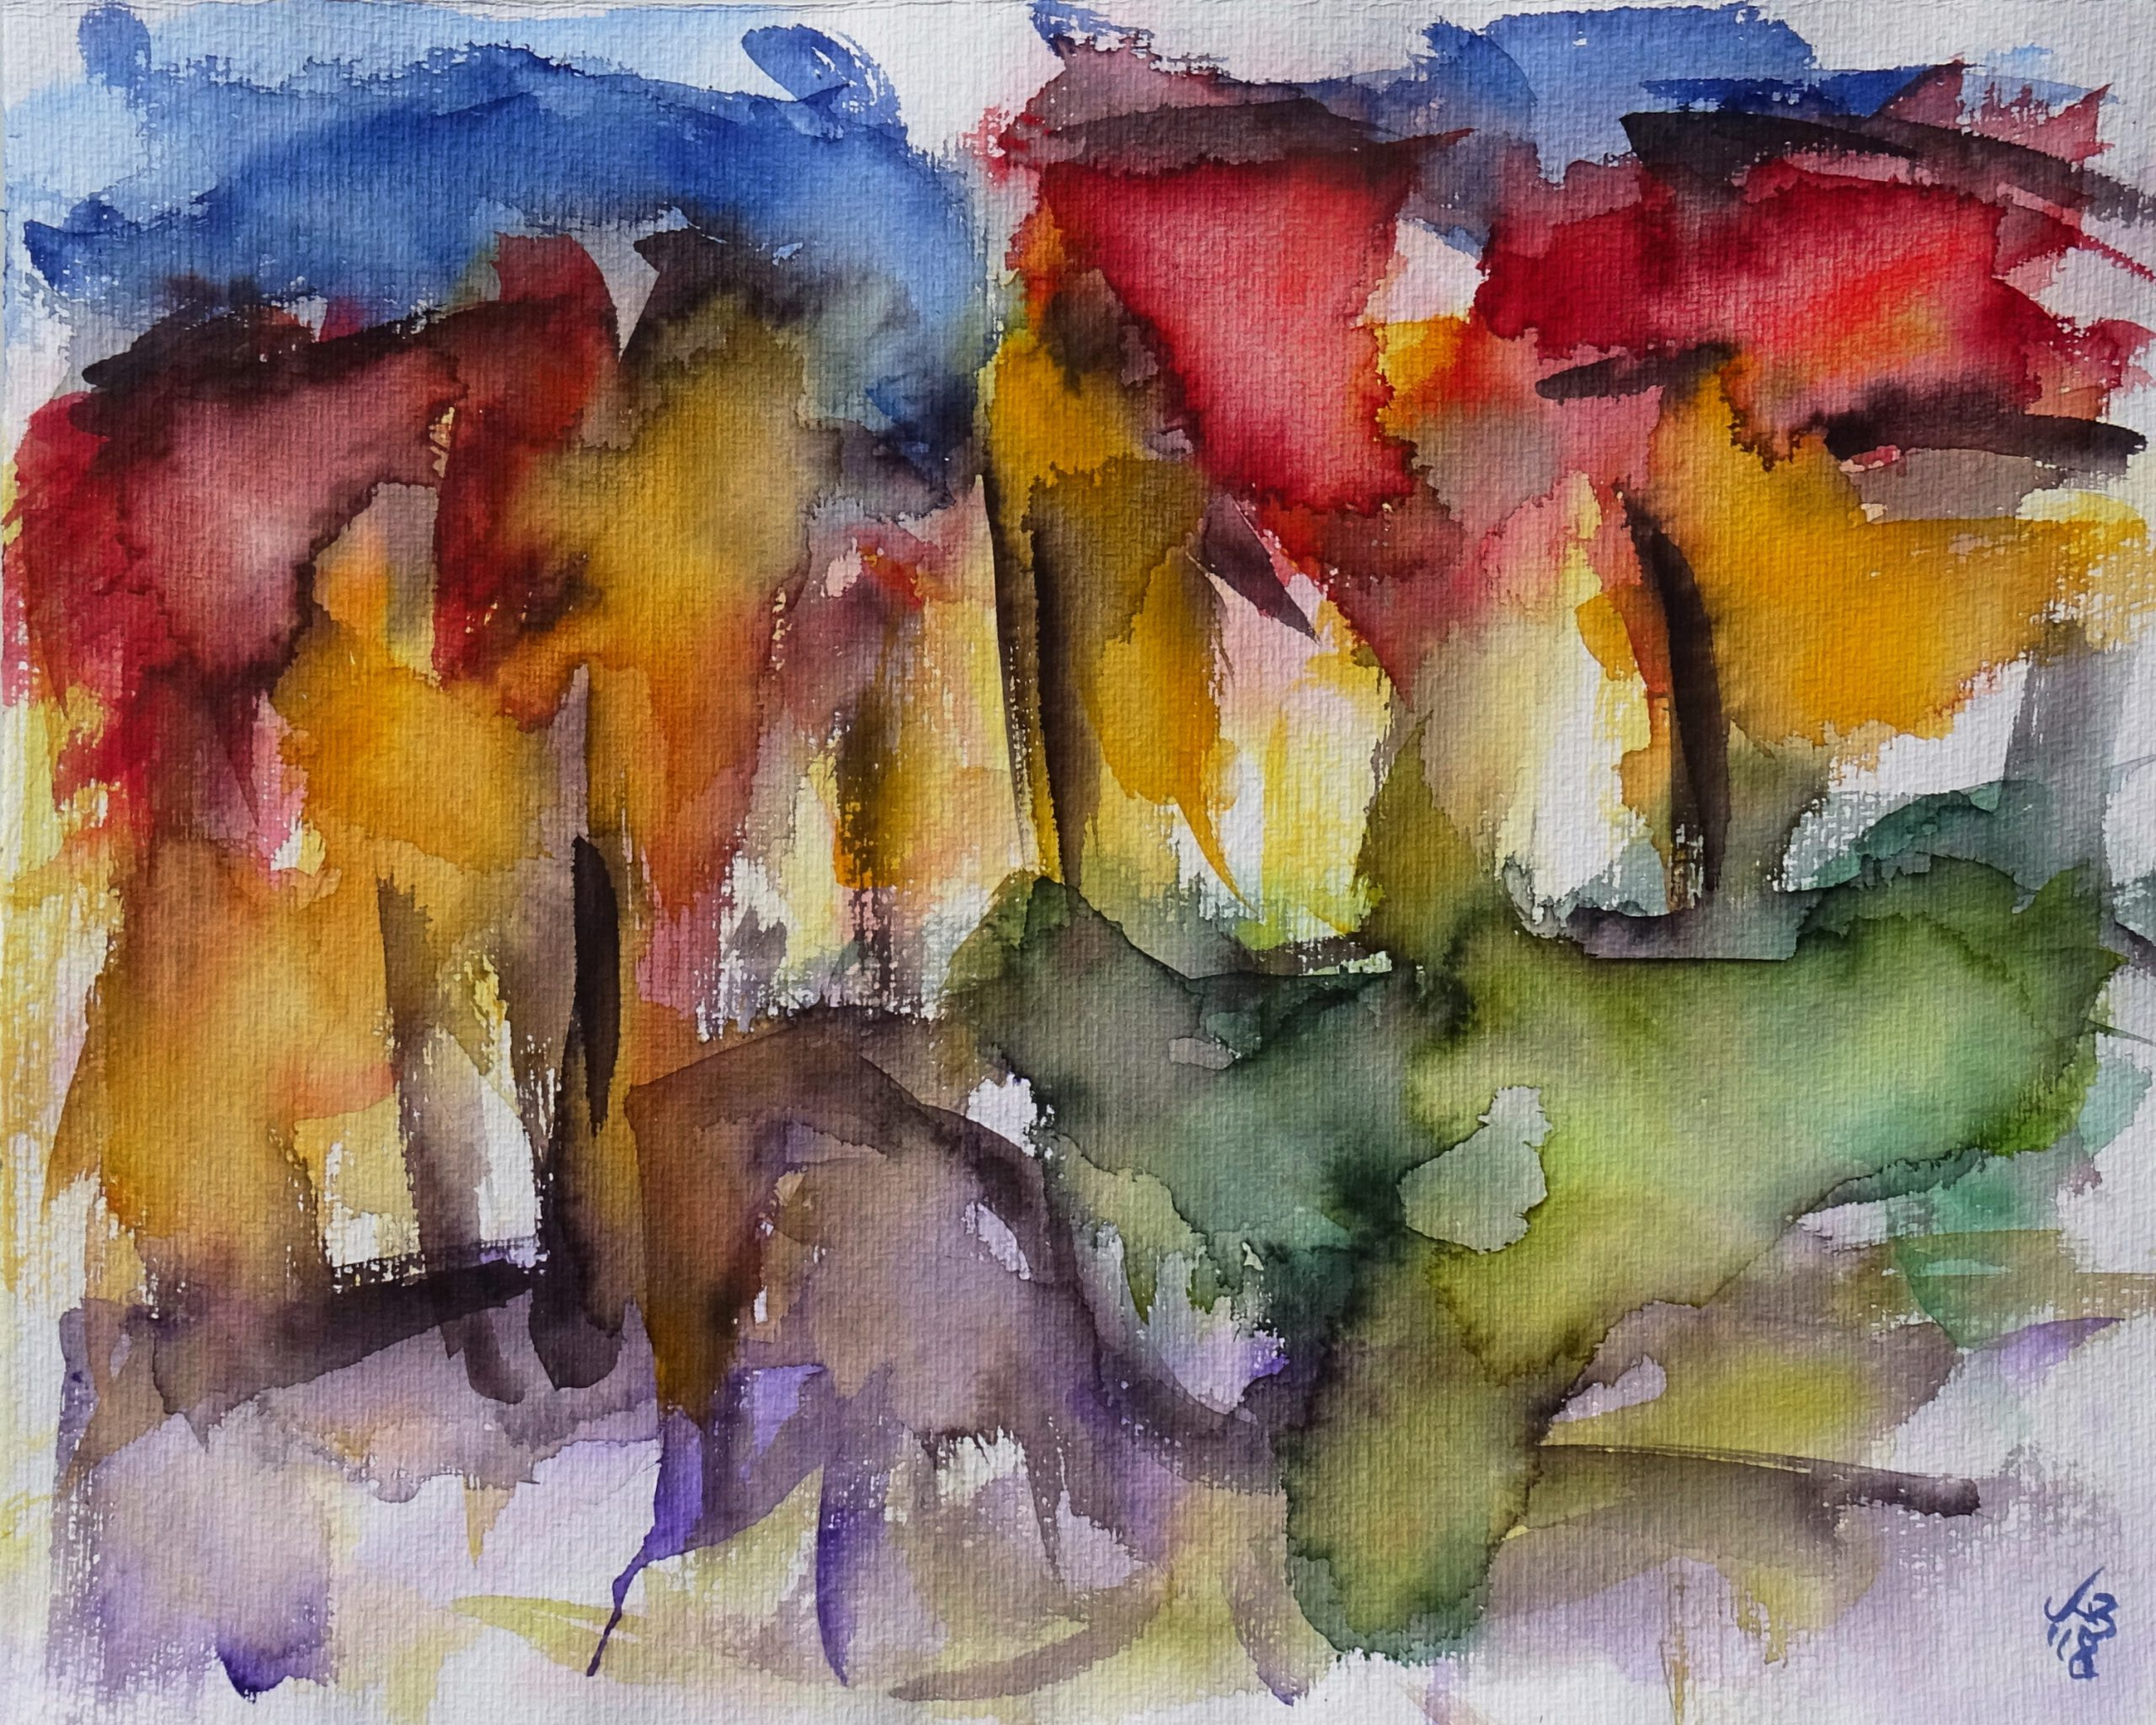 Kirchgasse, Watercolour 50 x 40 cm, © 2018 by Klaus Bölling